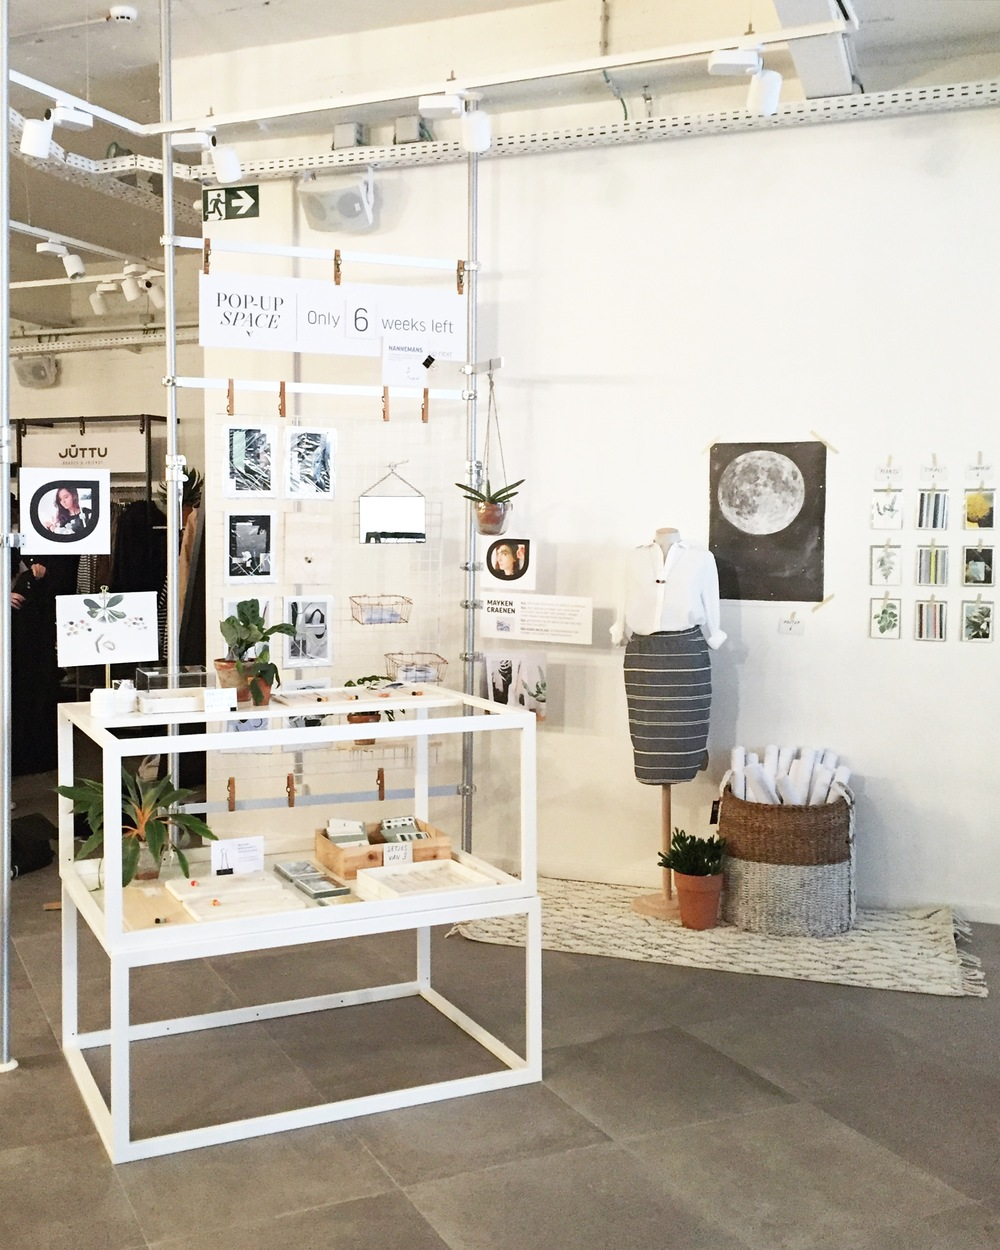 Pop Up Space Juttu Roeselare